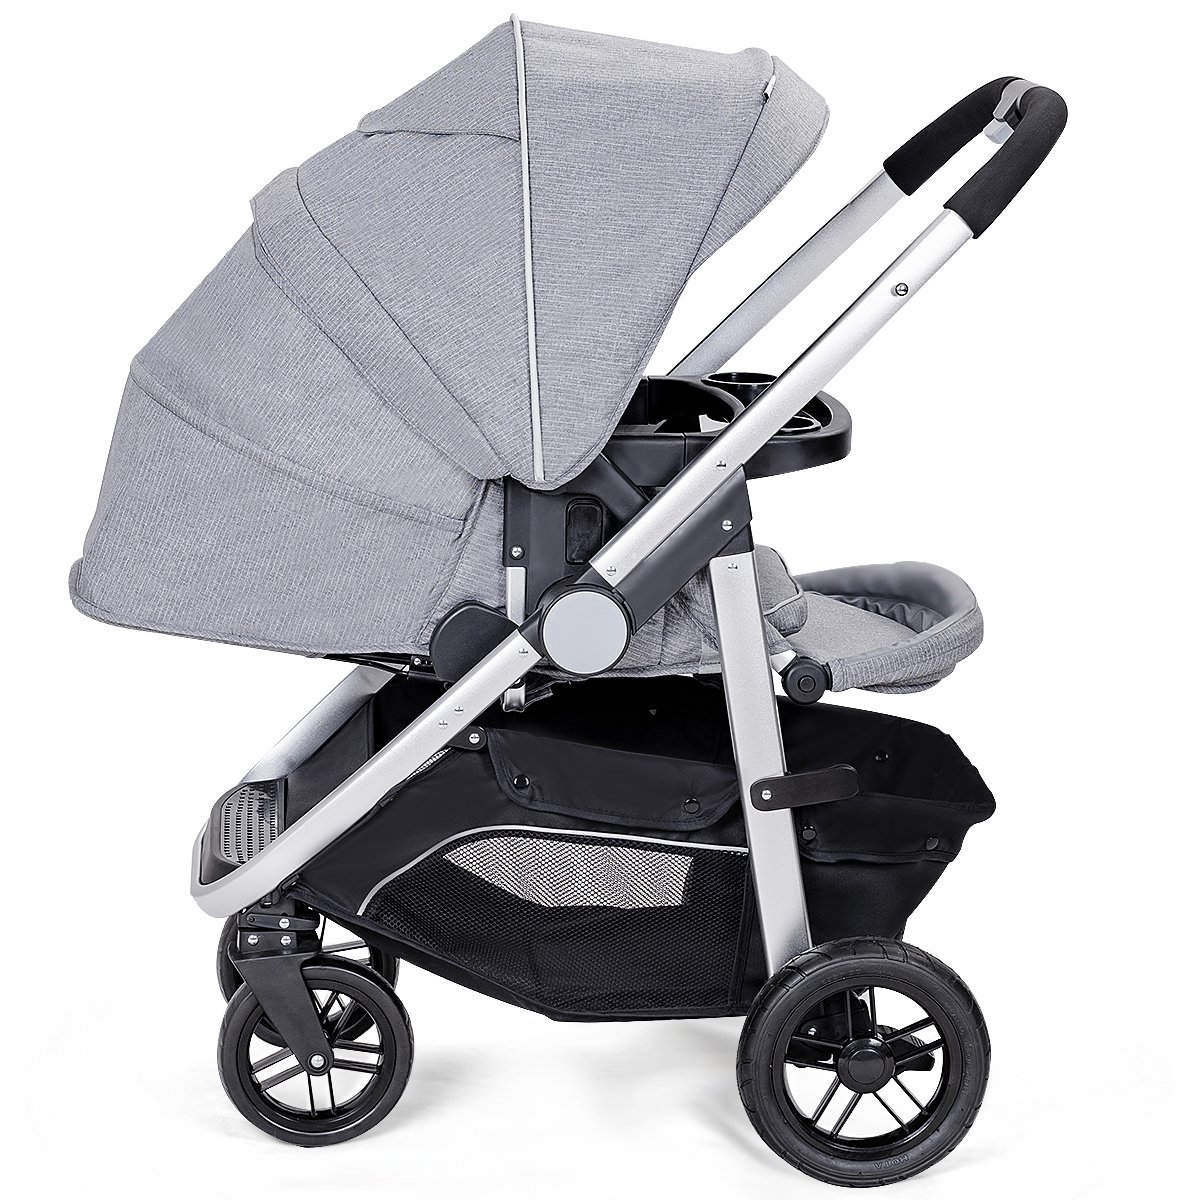 Costzon Baby Stroller, Convertible Baby Carriage, Infant Pram Stroller with Cup Holder and 5-Point Safety System (Gray)